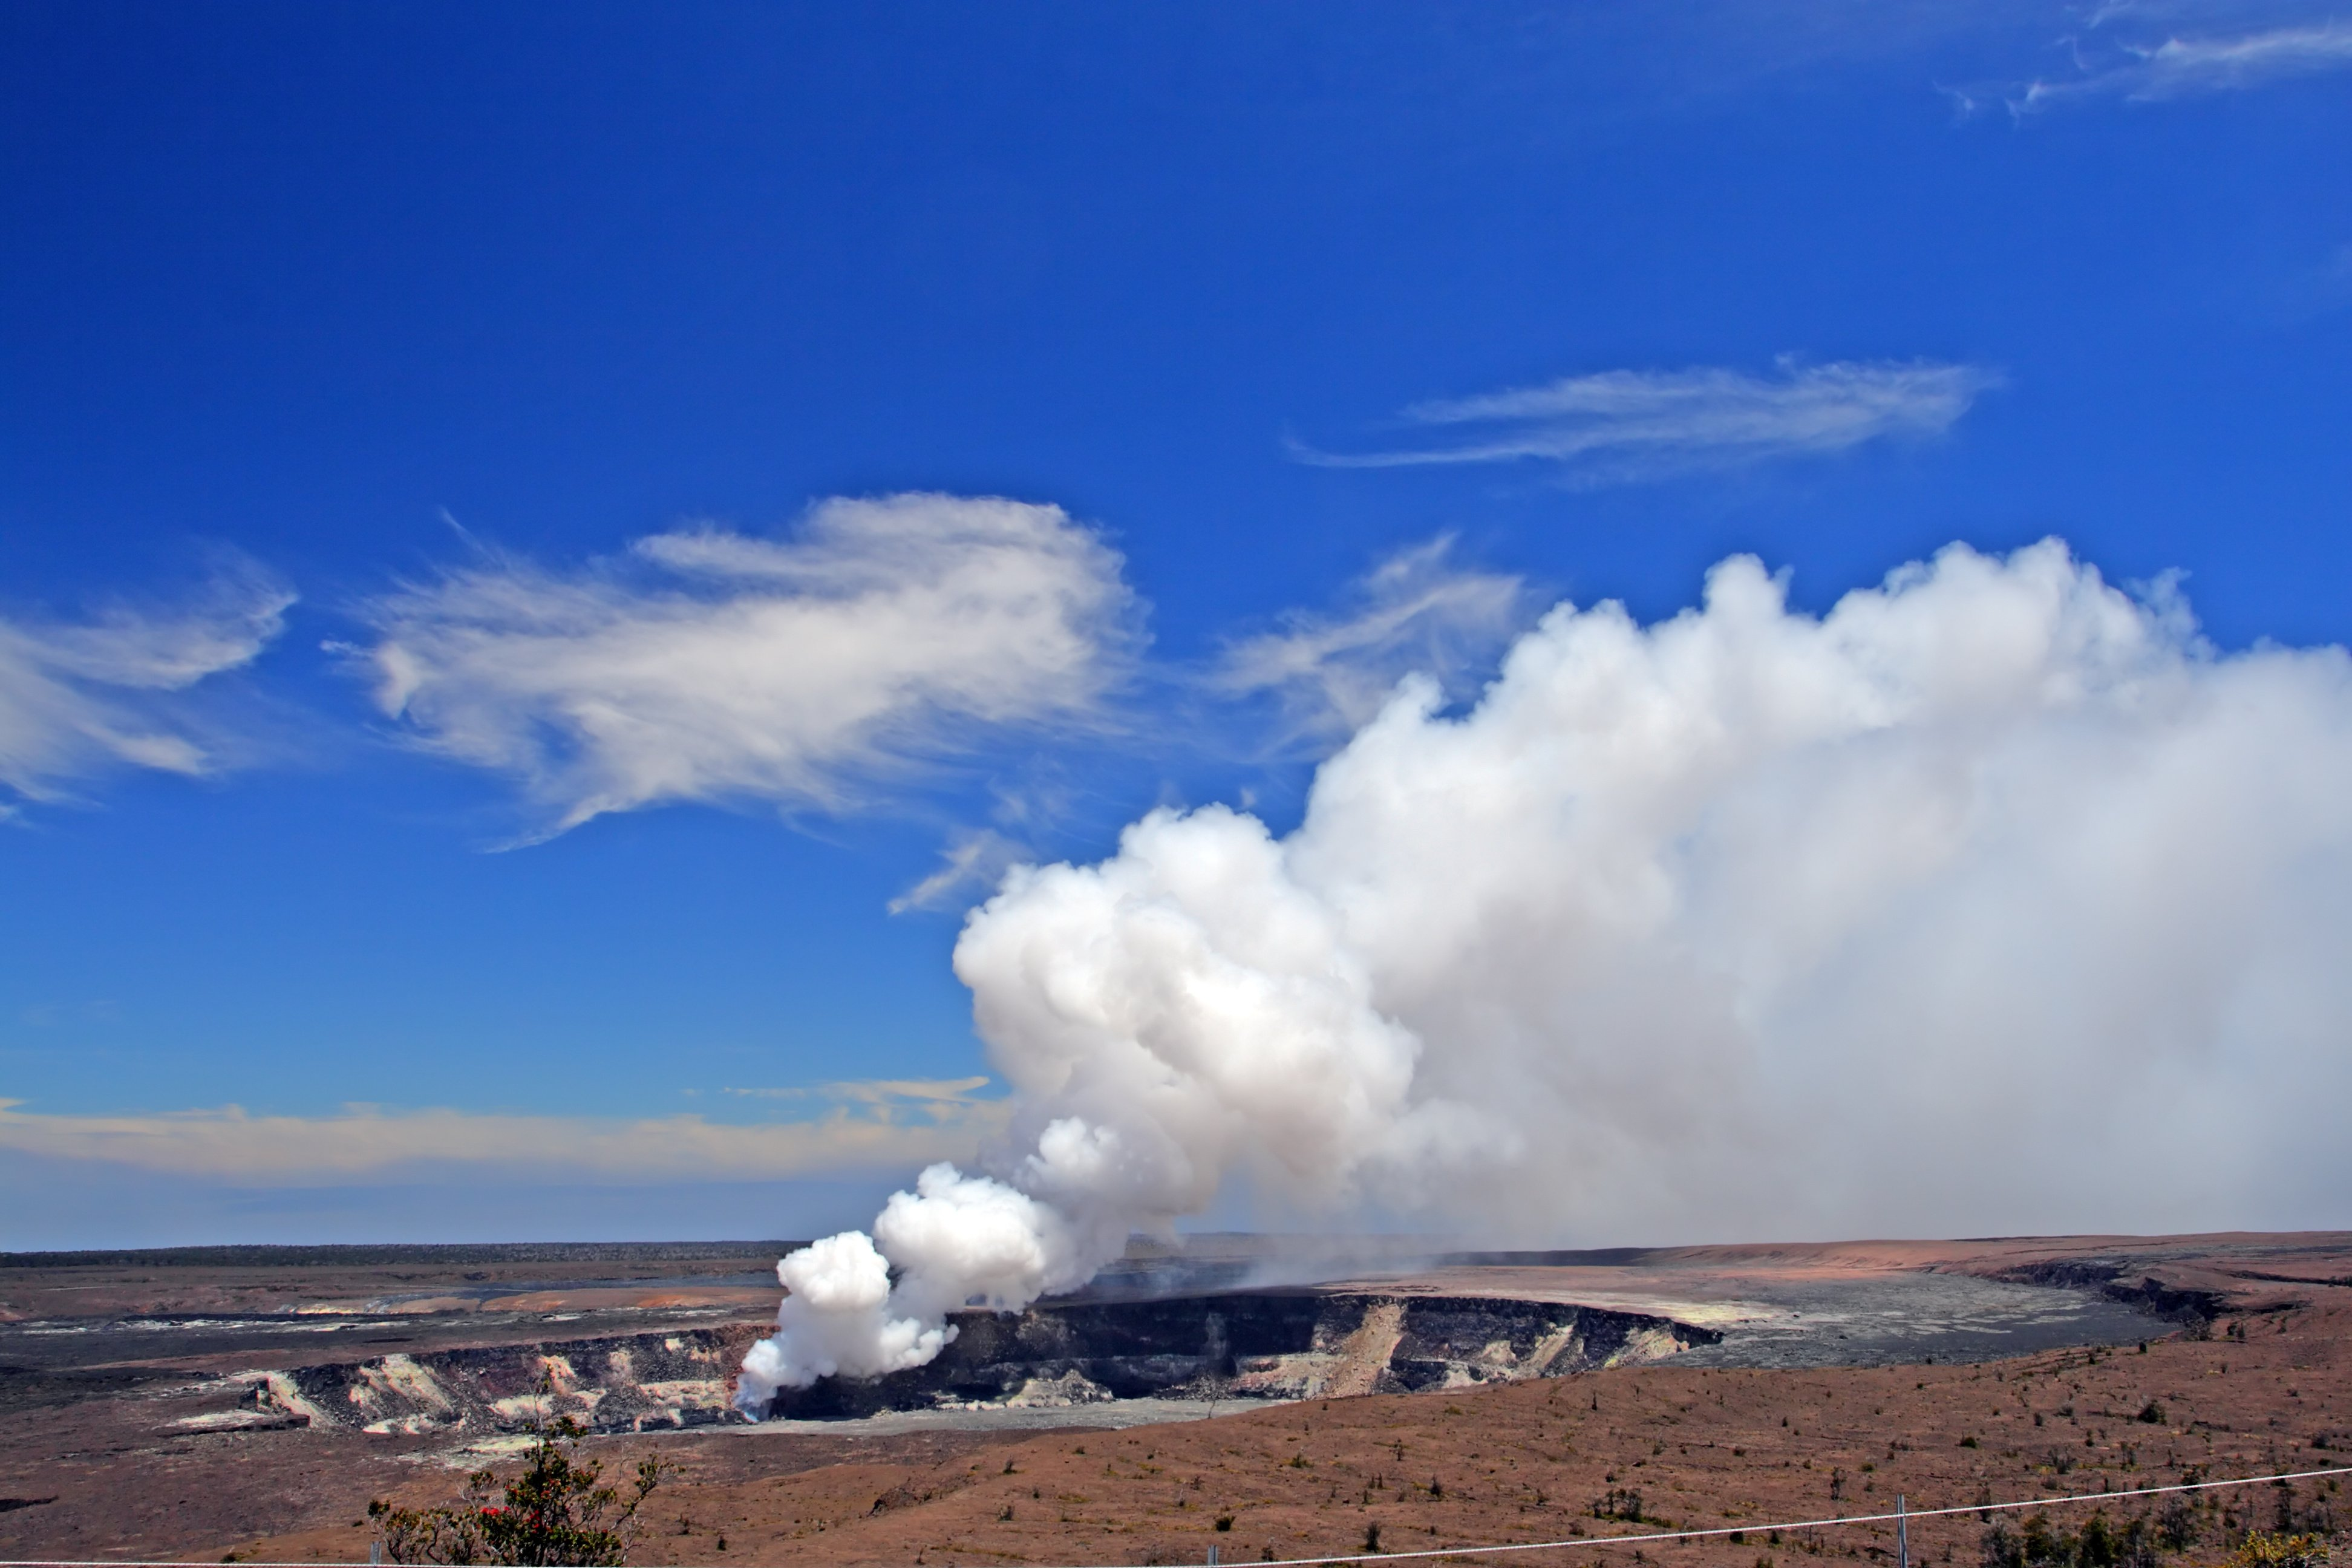 7-Day Pearl Harbor, Hilo, Mini Circle Island Tour from Honolulu with Round Trip Airport Pick Up